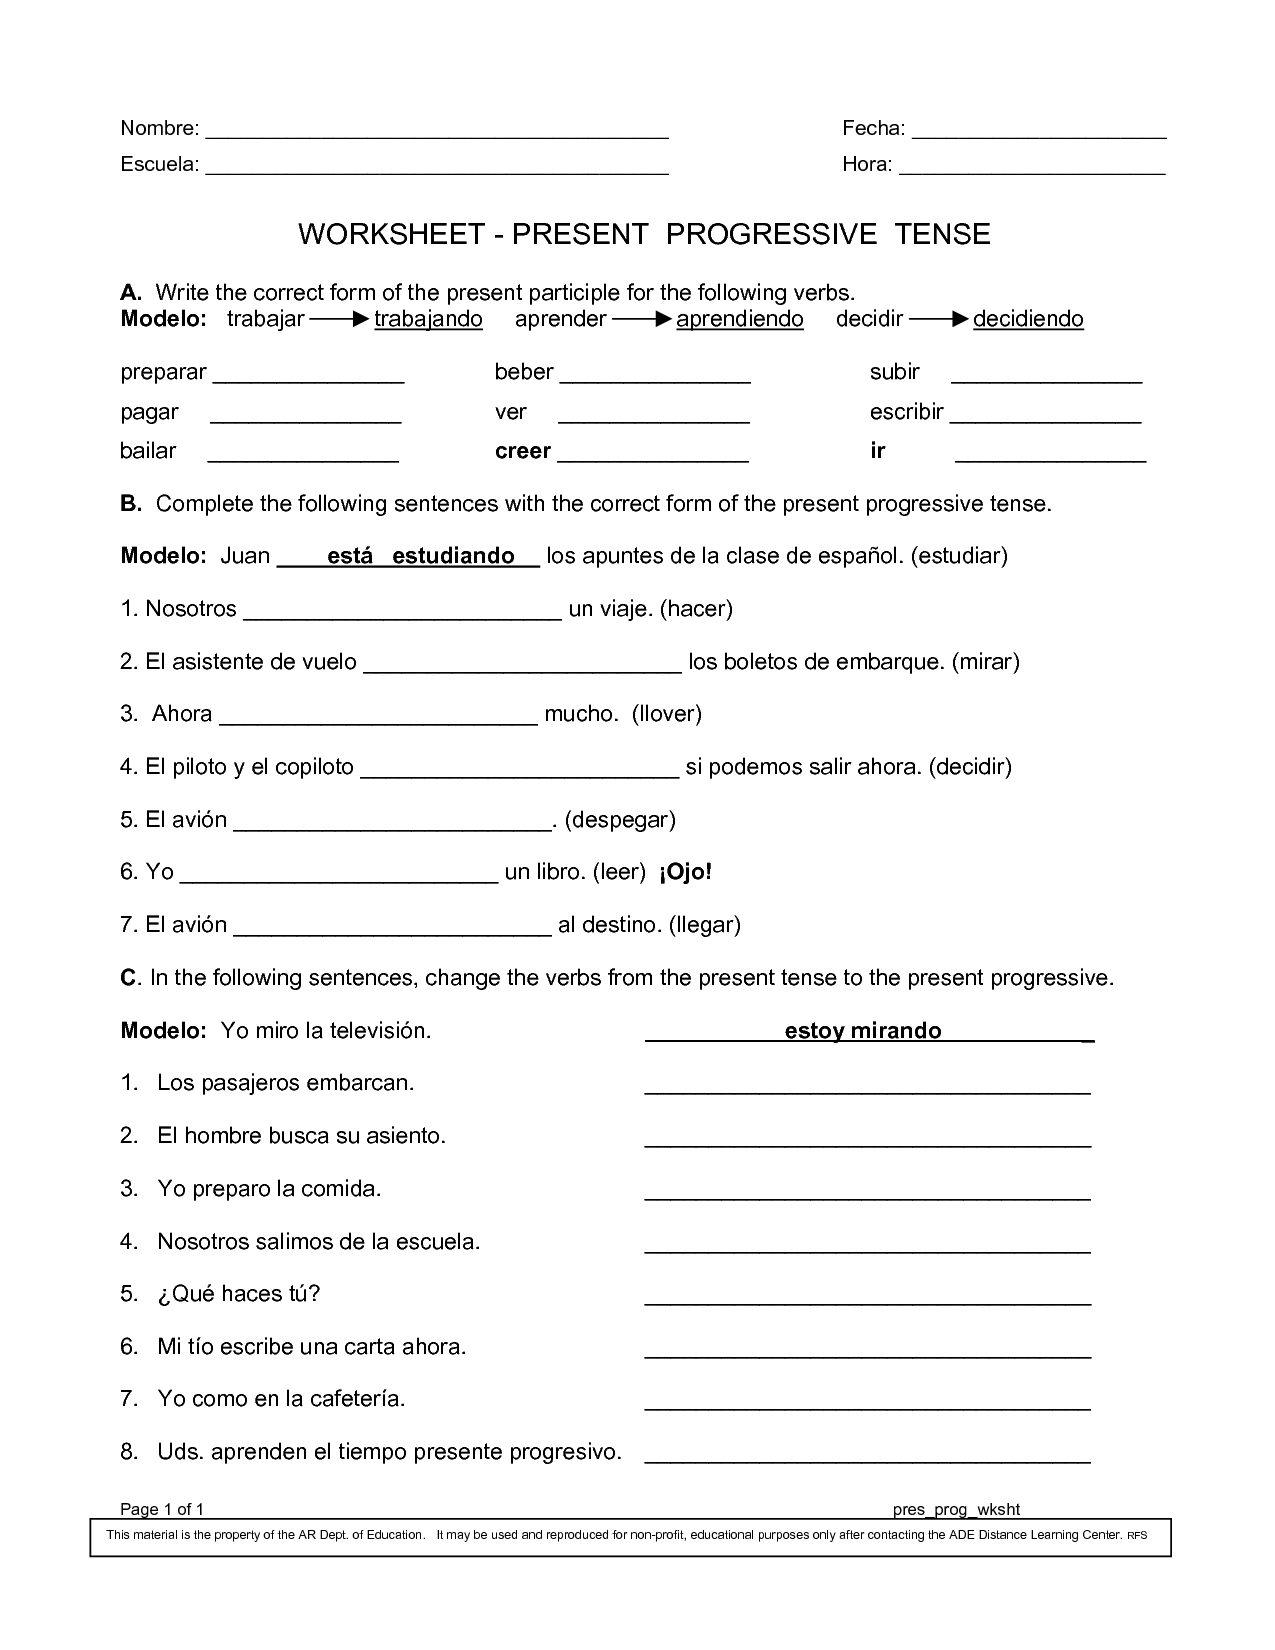 Worksheets Conversational Spanish Worksheets spanish worksheets printables present progressive worksheet worksheet